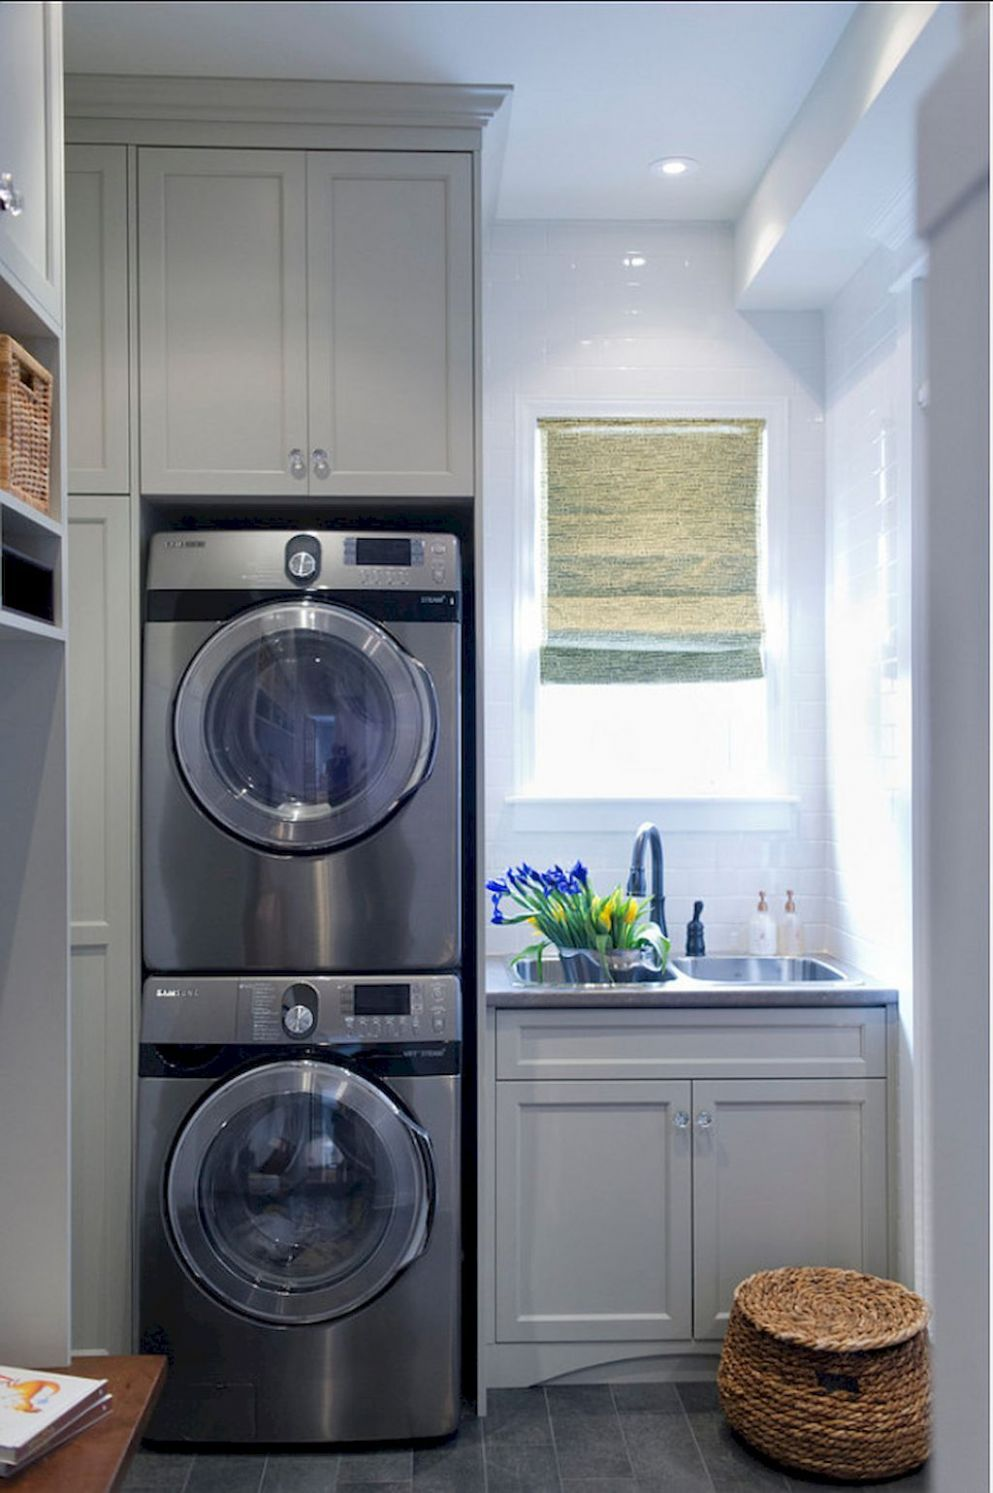 Pin by Sally wiersema on laundry | Laundry room design, Laundry ...